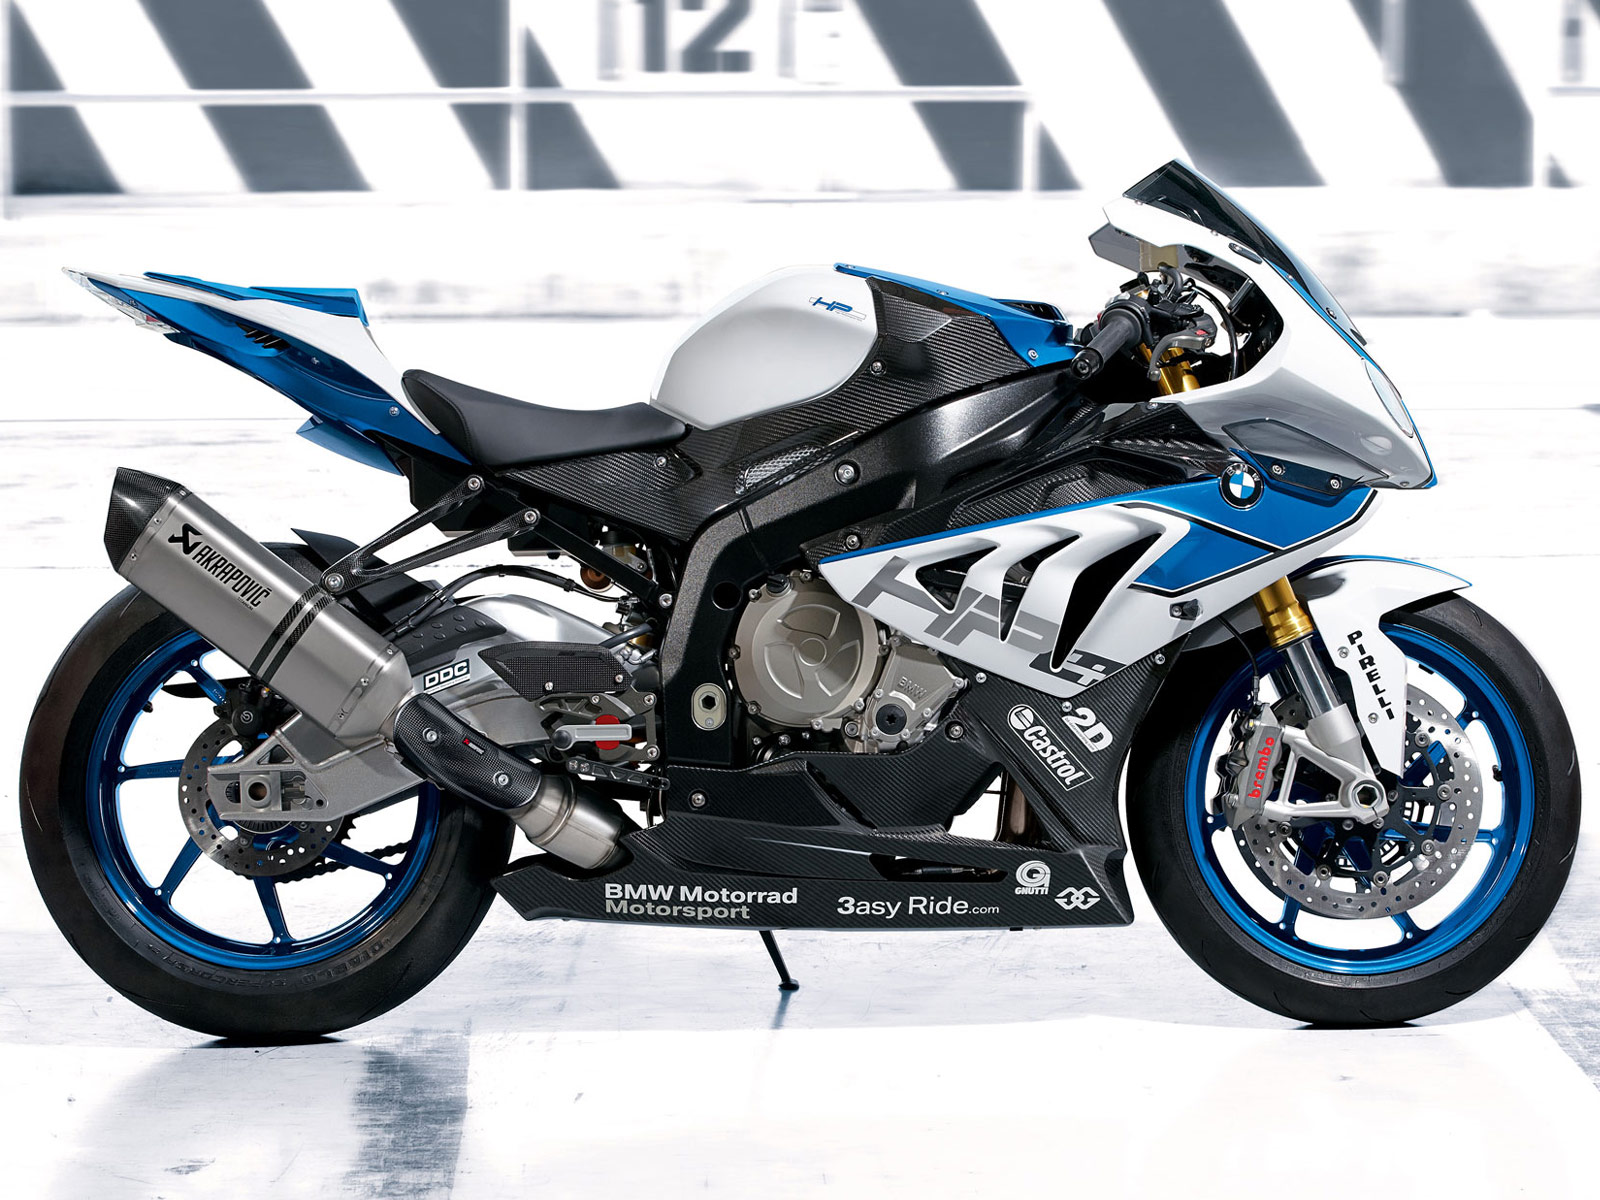 2013 bmw hp4 motorcycle pictures review insurance information. Black Bedroom Furniture Sets. Home Design Ideas